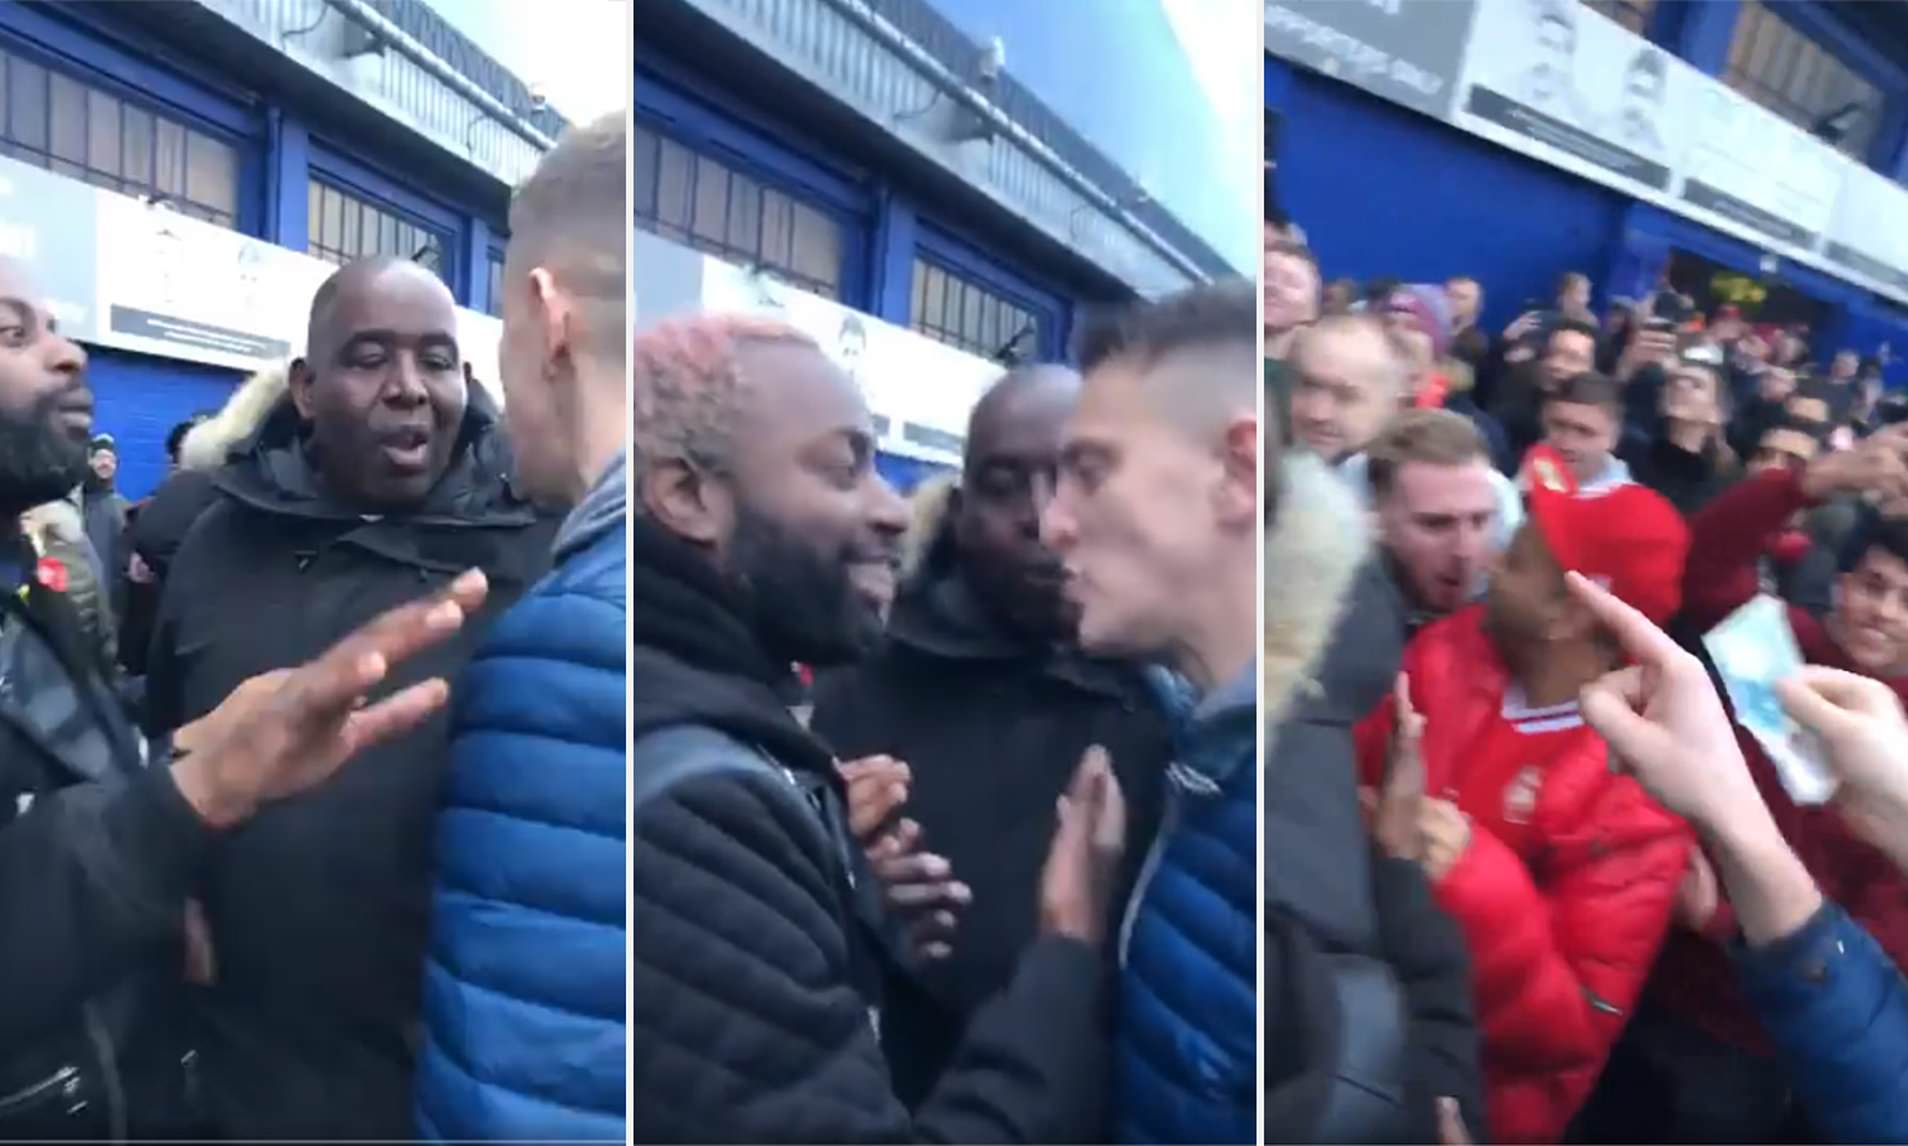 Robbie From Arsenal Fan Tv Caught Up In Unsavoury Scenes With